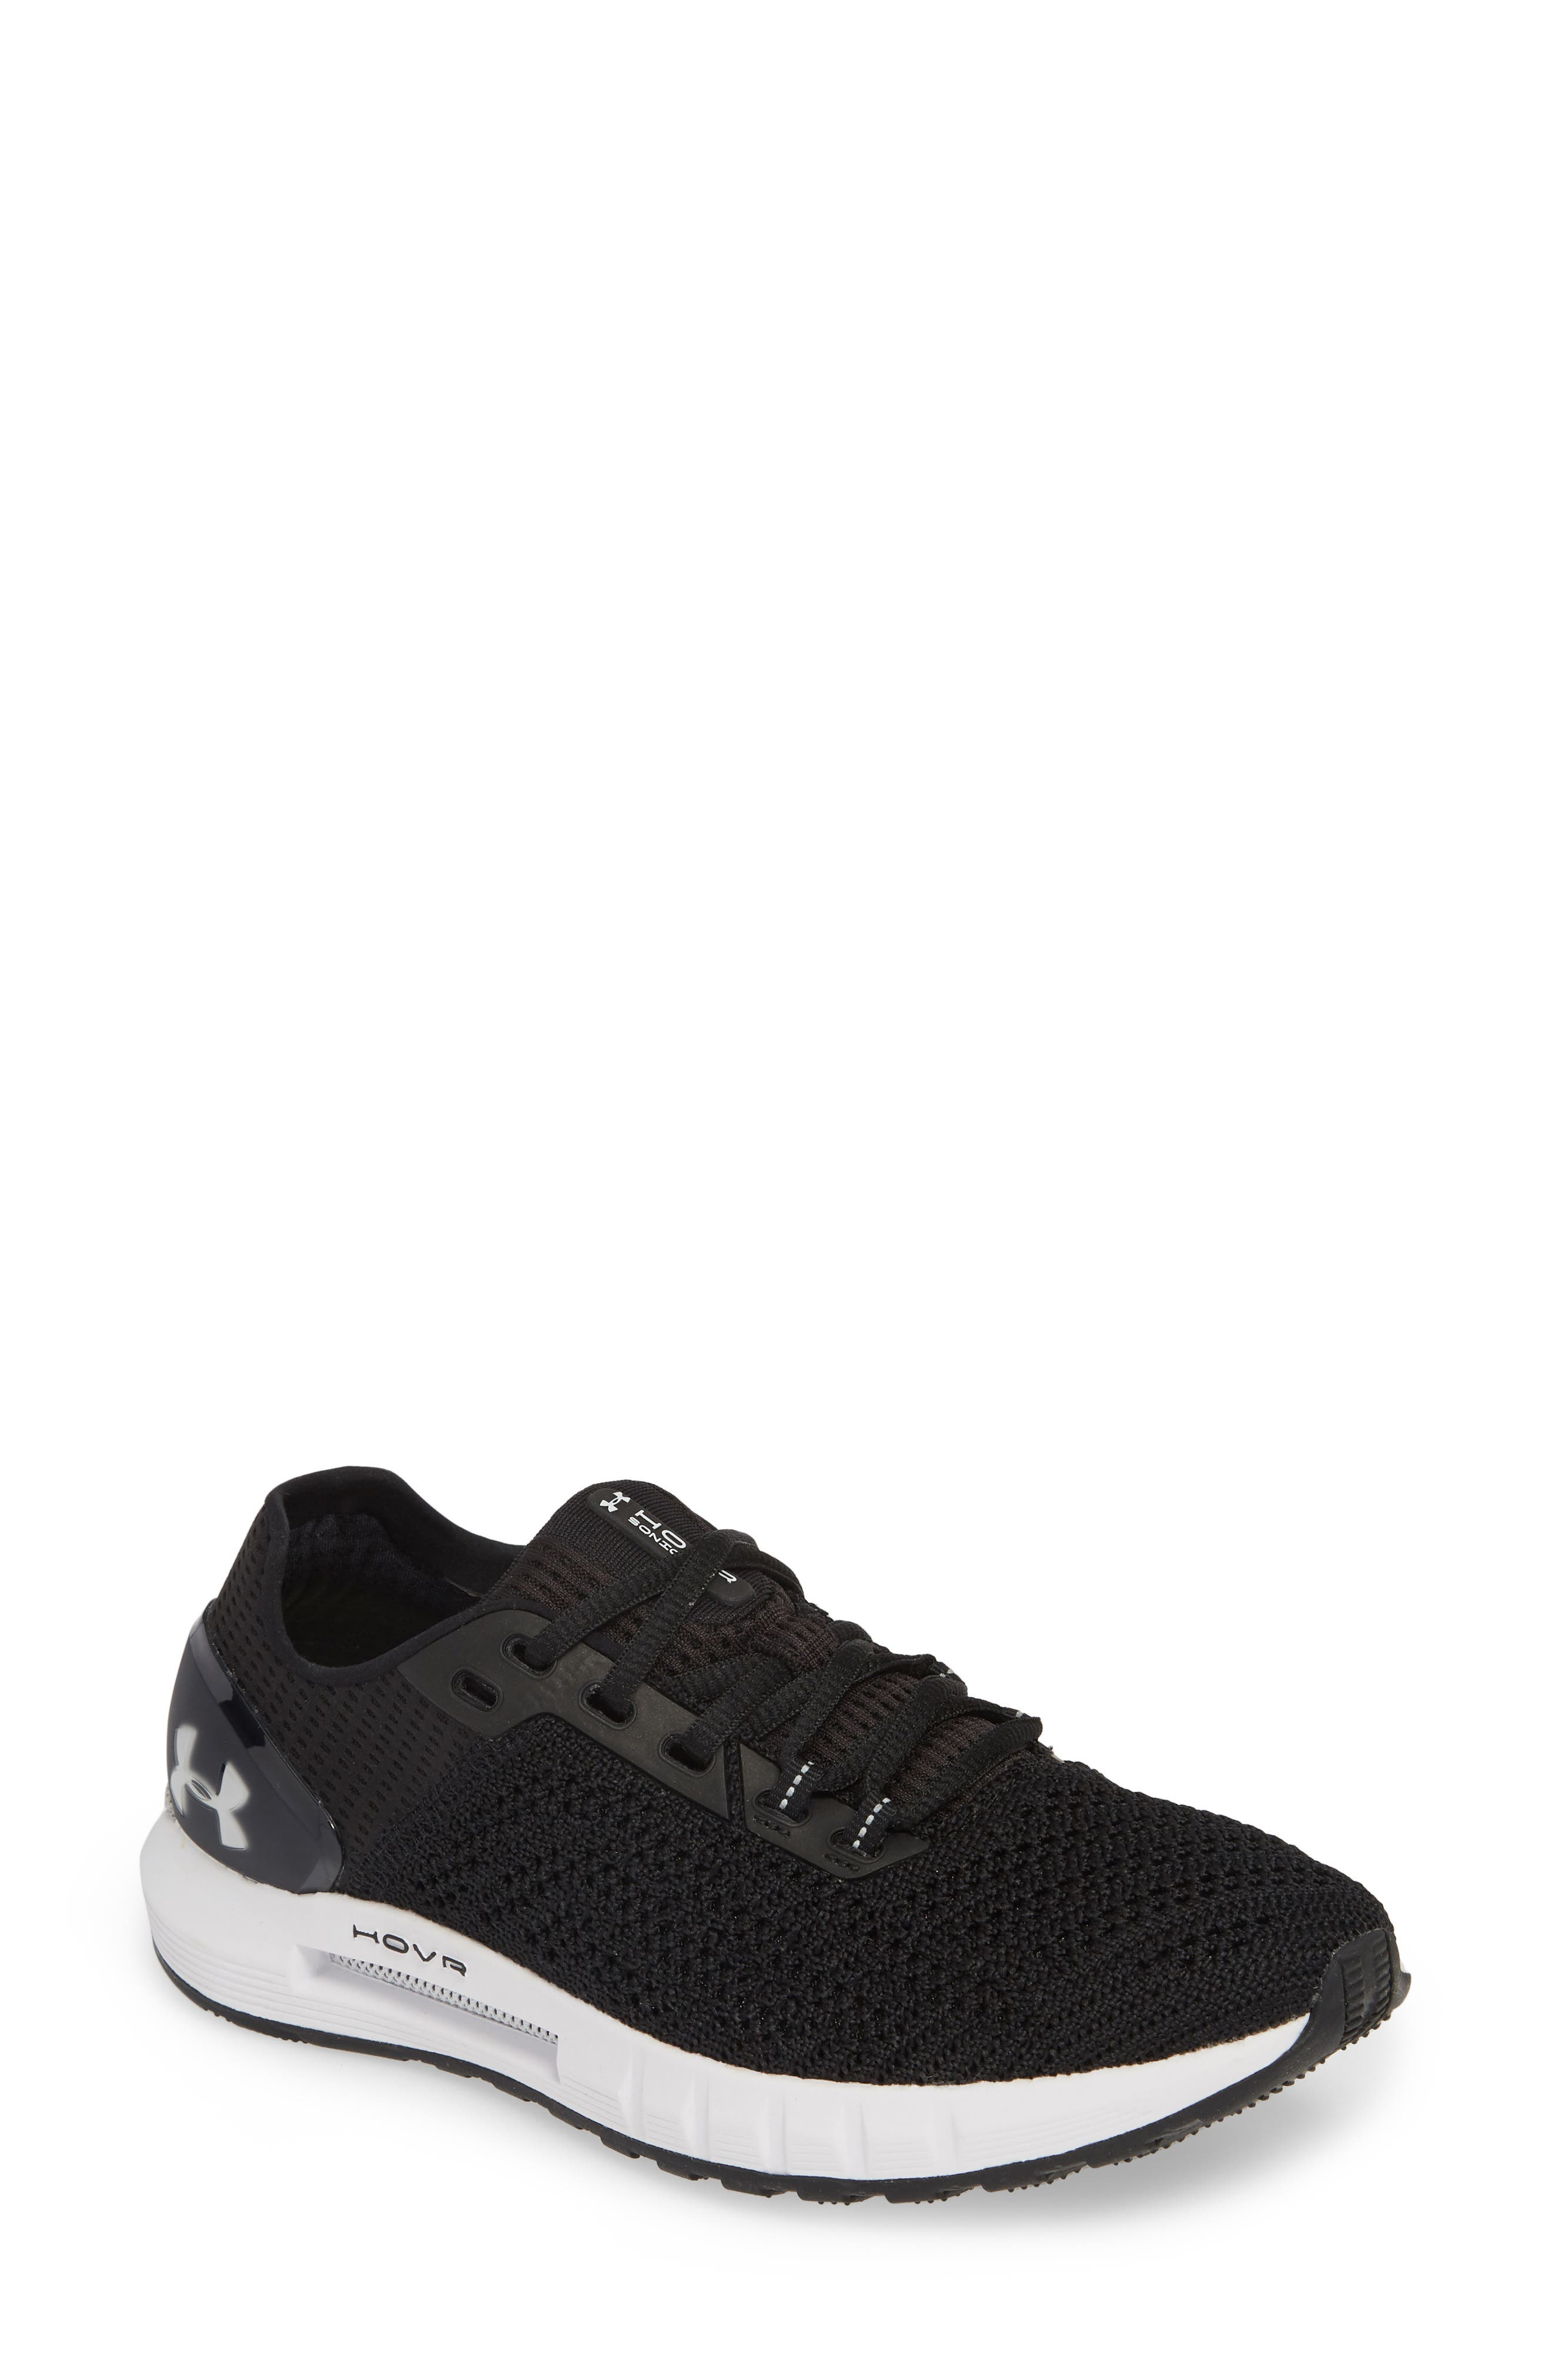 HOVR<sup>™</sup> Sonic 2 Connected Running Shoe,                             Main thumbnail 1, color,                             BLACK/ WHITE/ WHITE